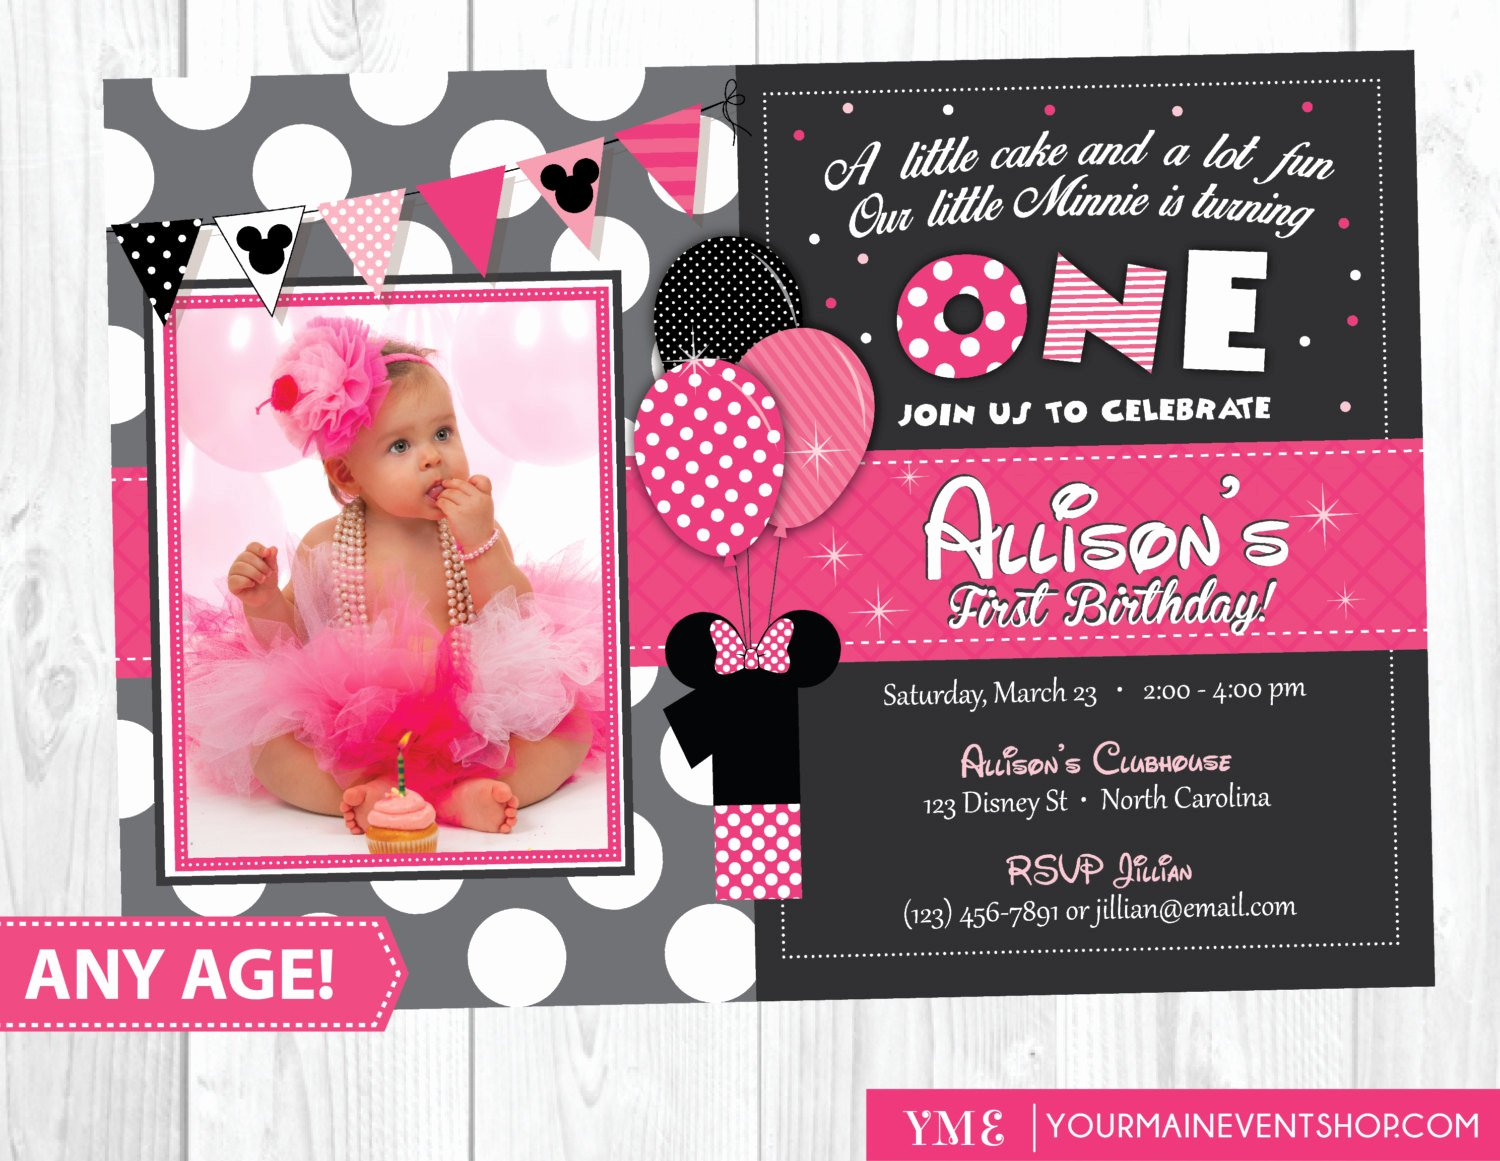 Minnie Mouse Invitation Card Awesome Minnie Mouse Birthday Invitation Minnie Mouse Inspired